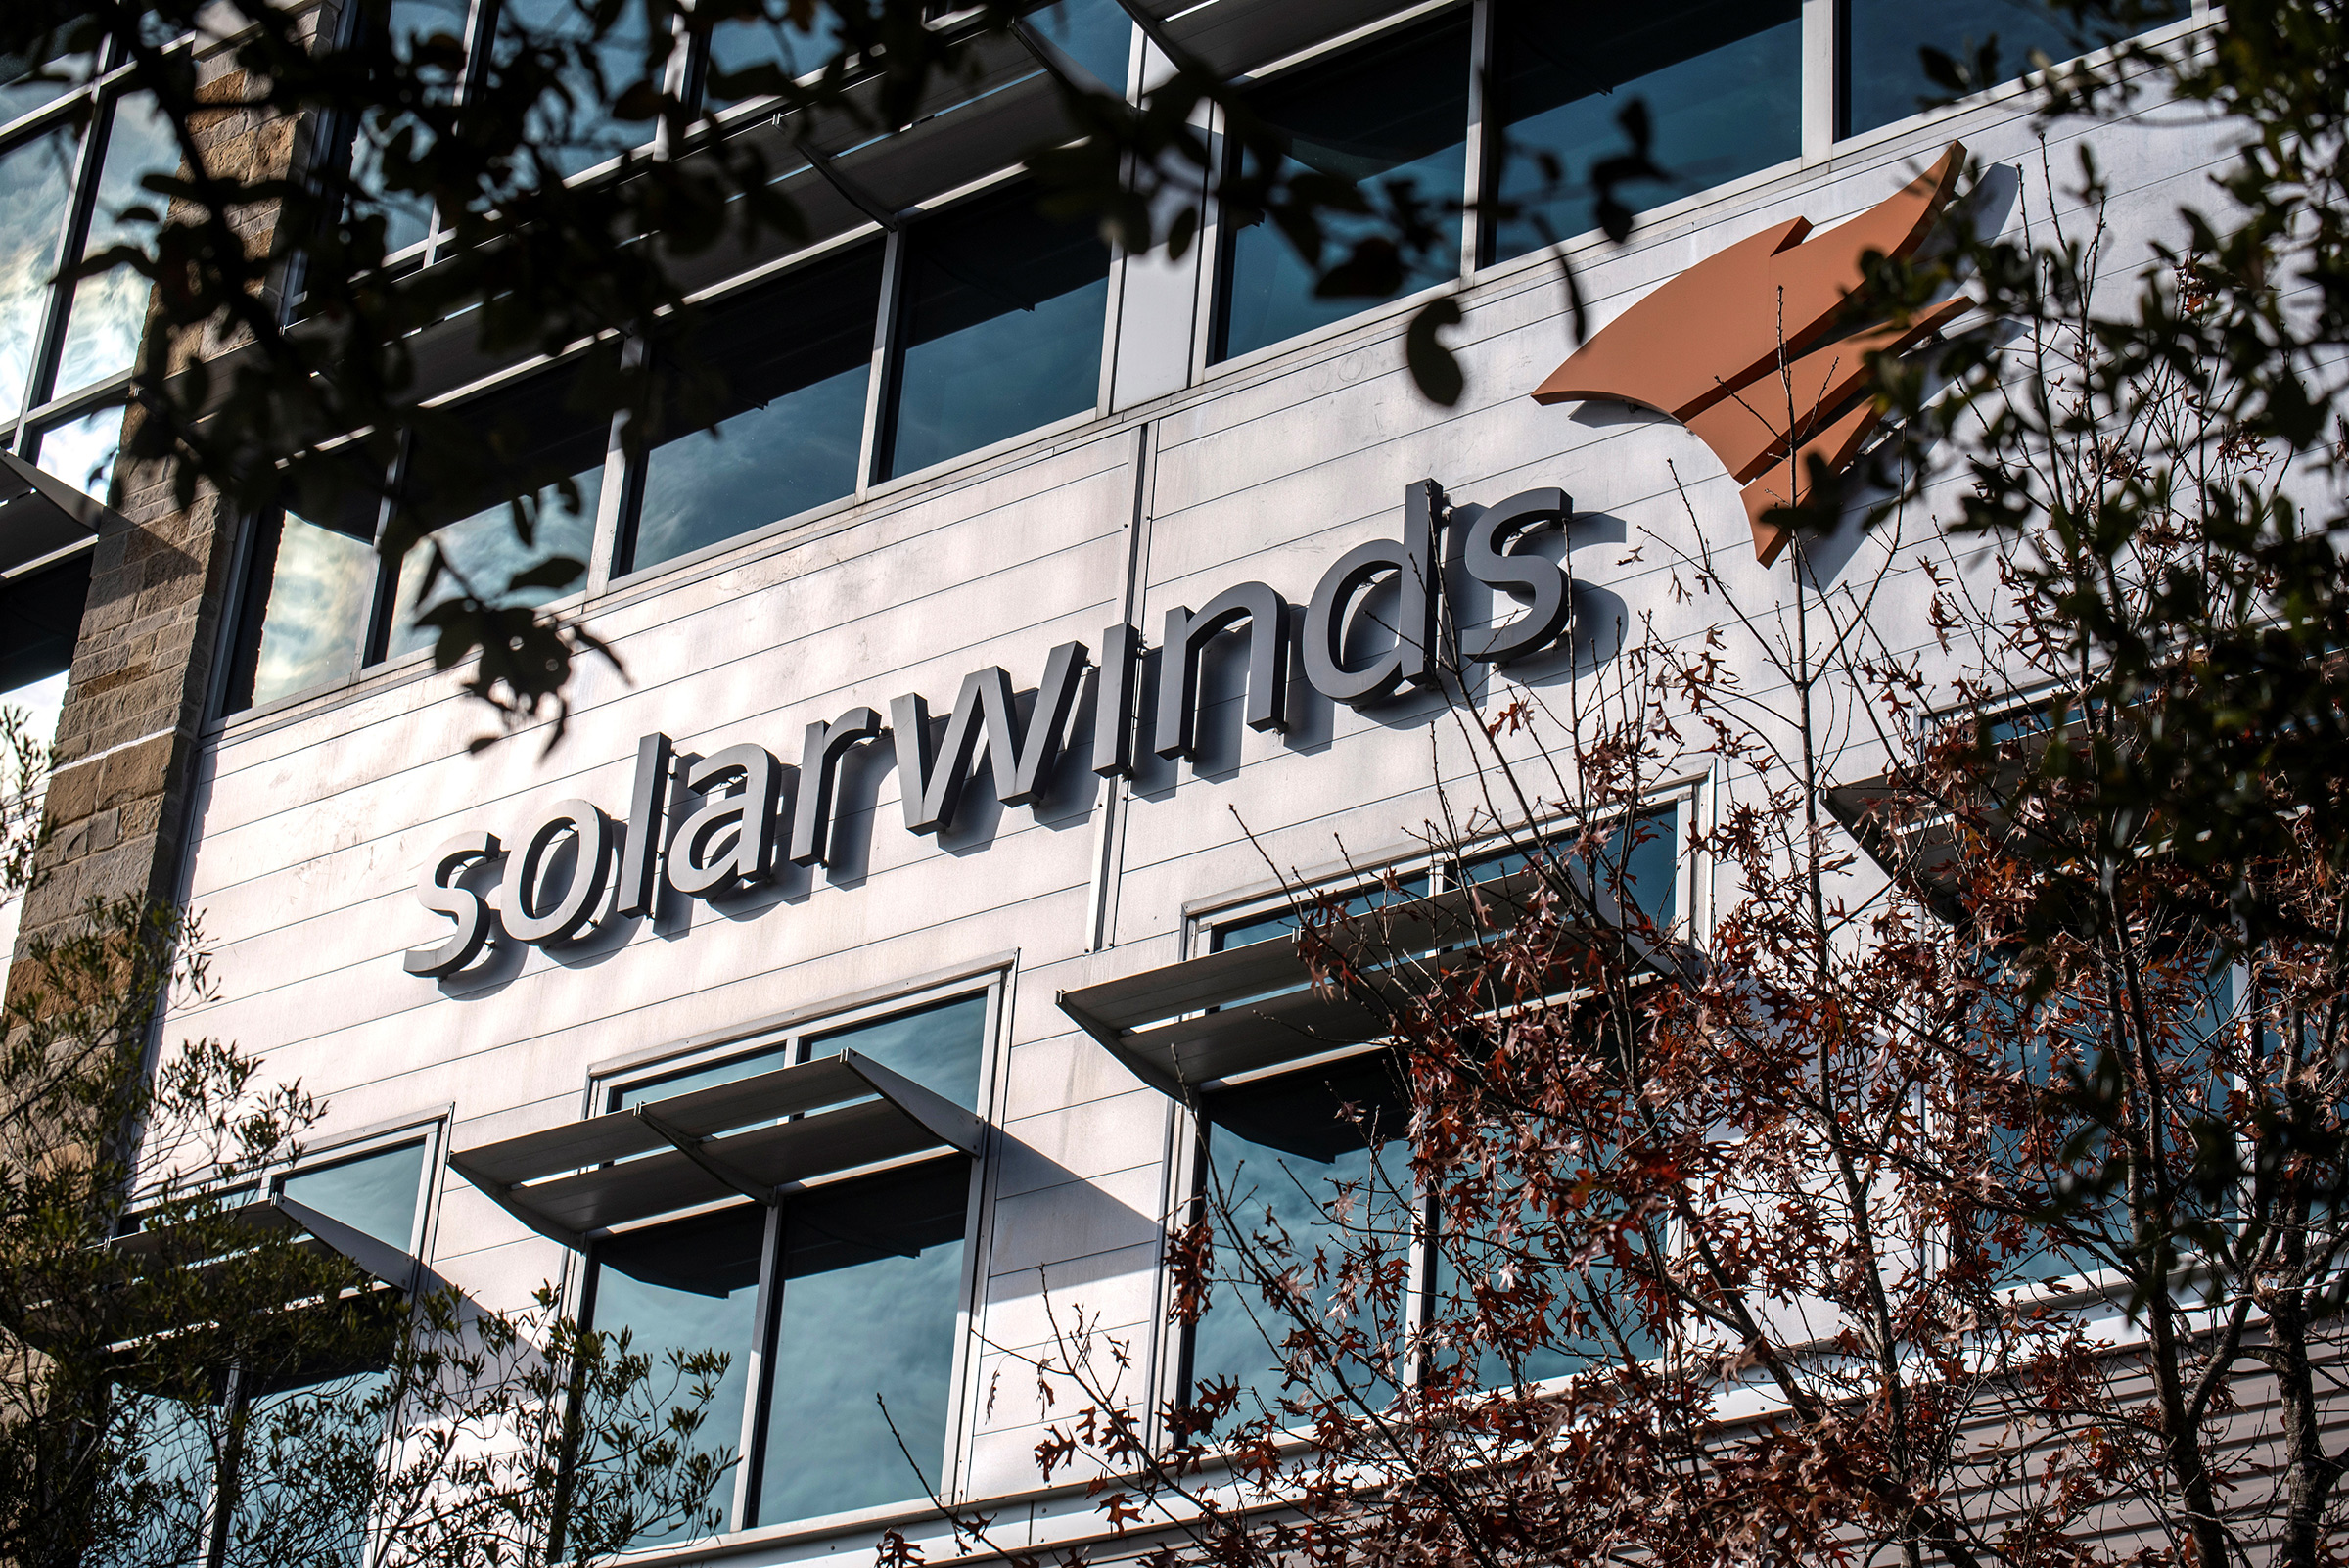 The SolarWinds logo is seen outside its headquarters in Austin, Texas, on Dec. 18